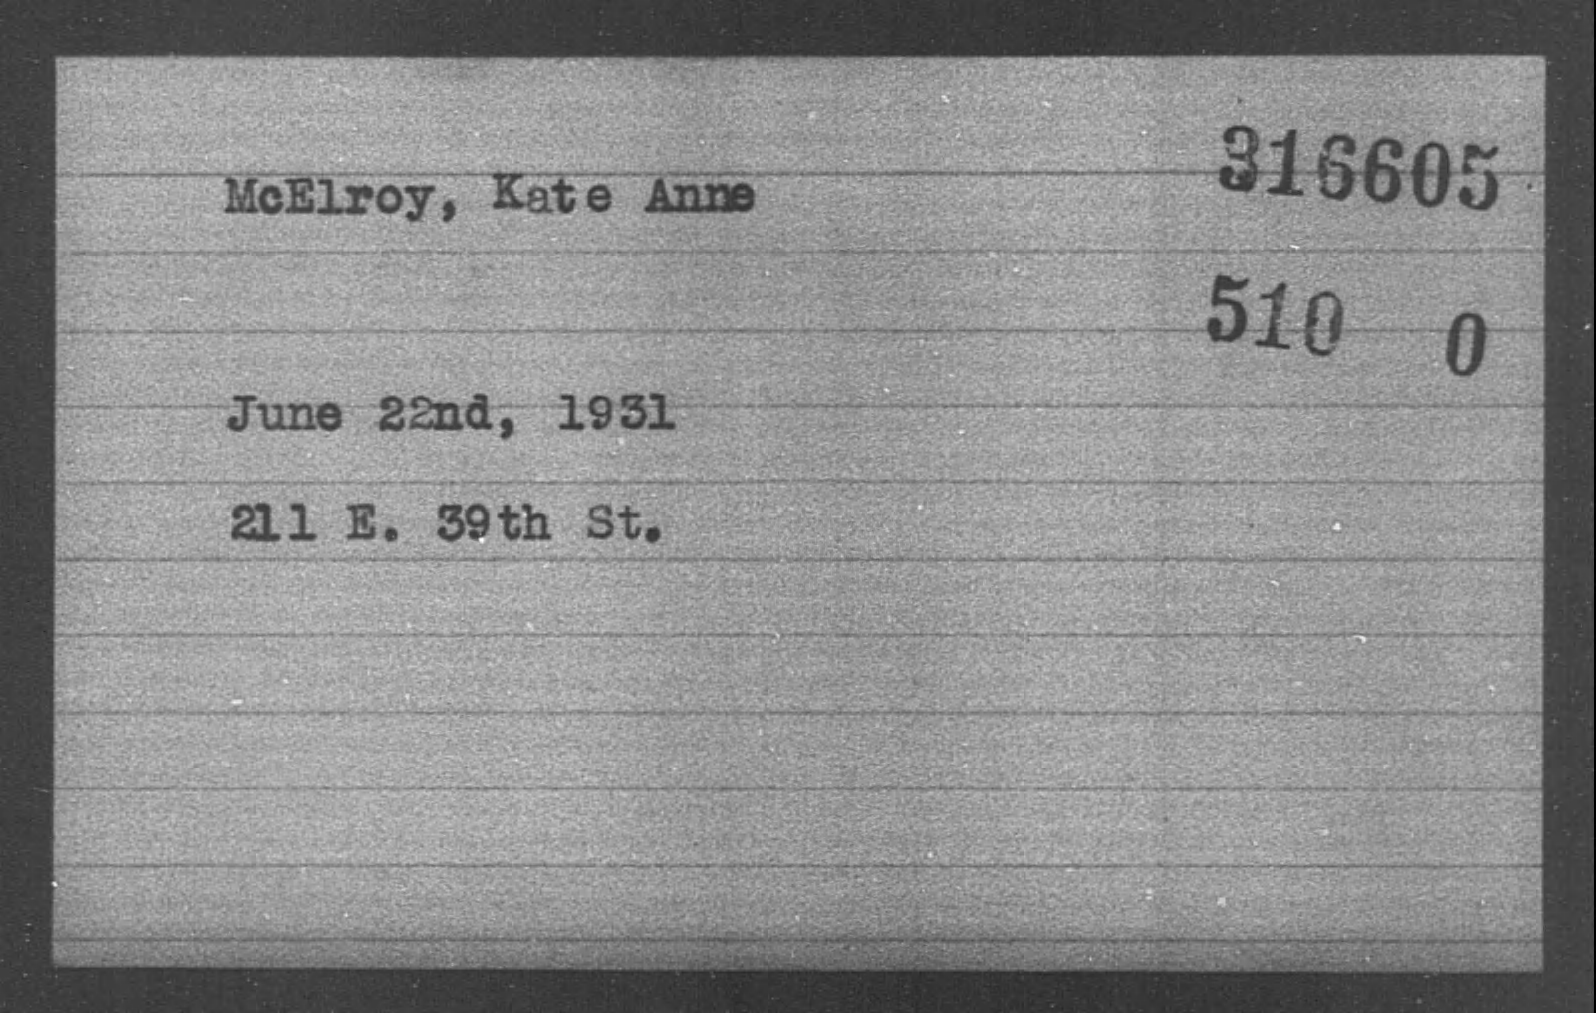 McElroy, Kate Anne